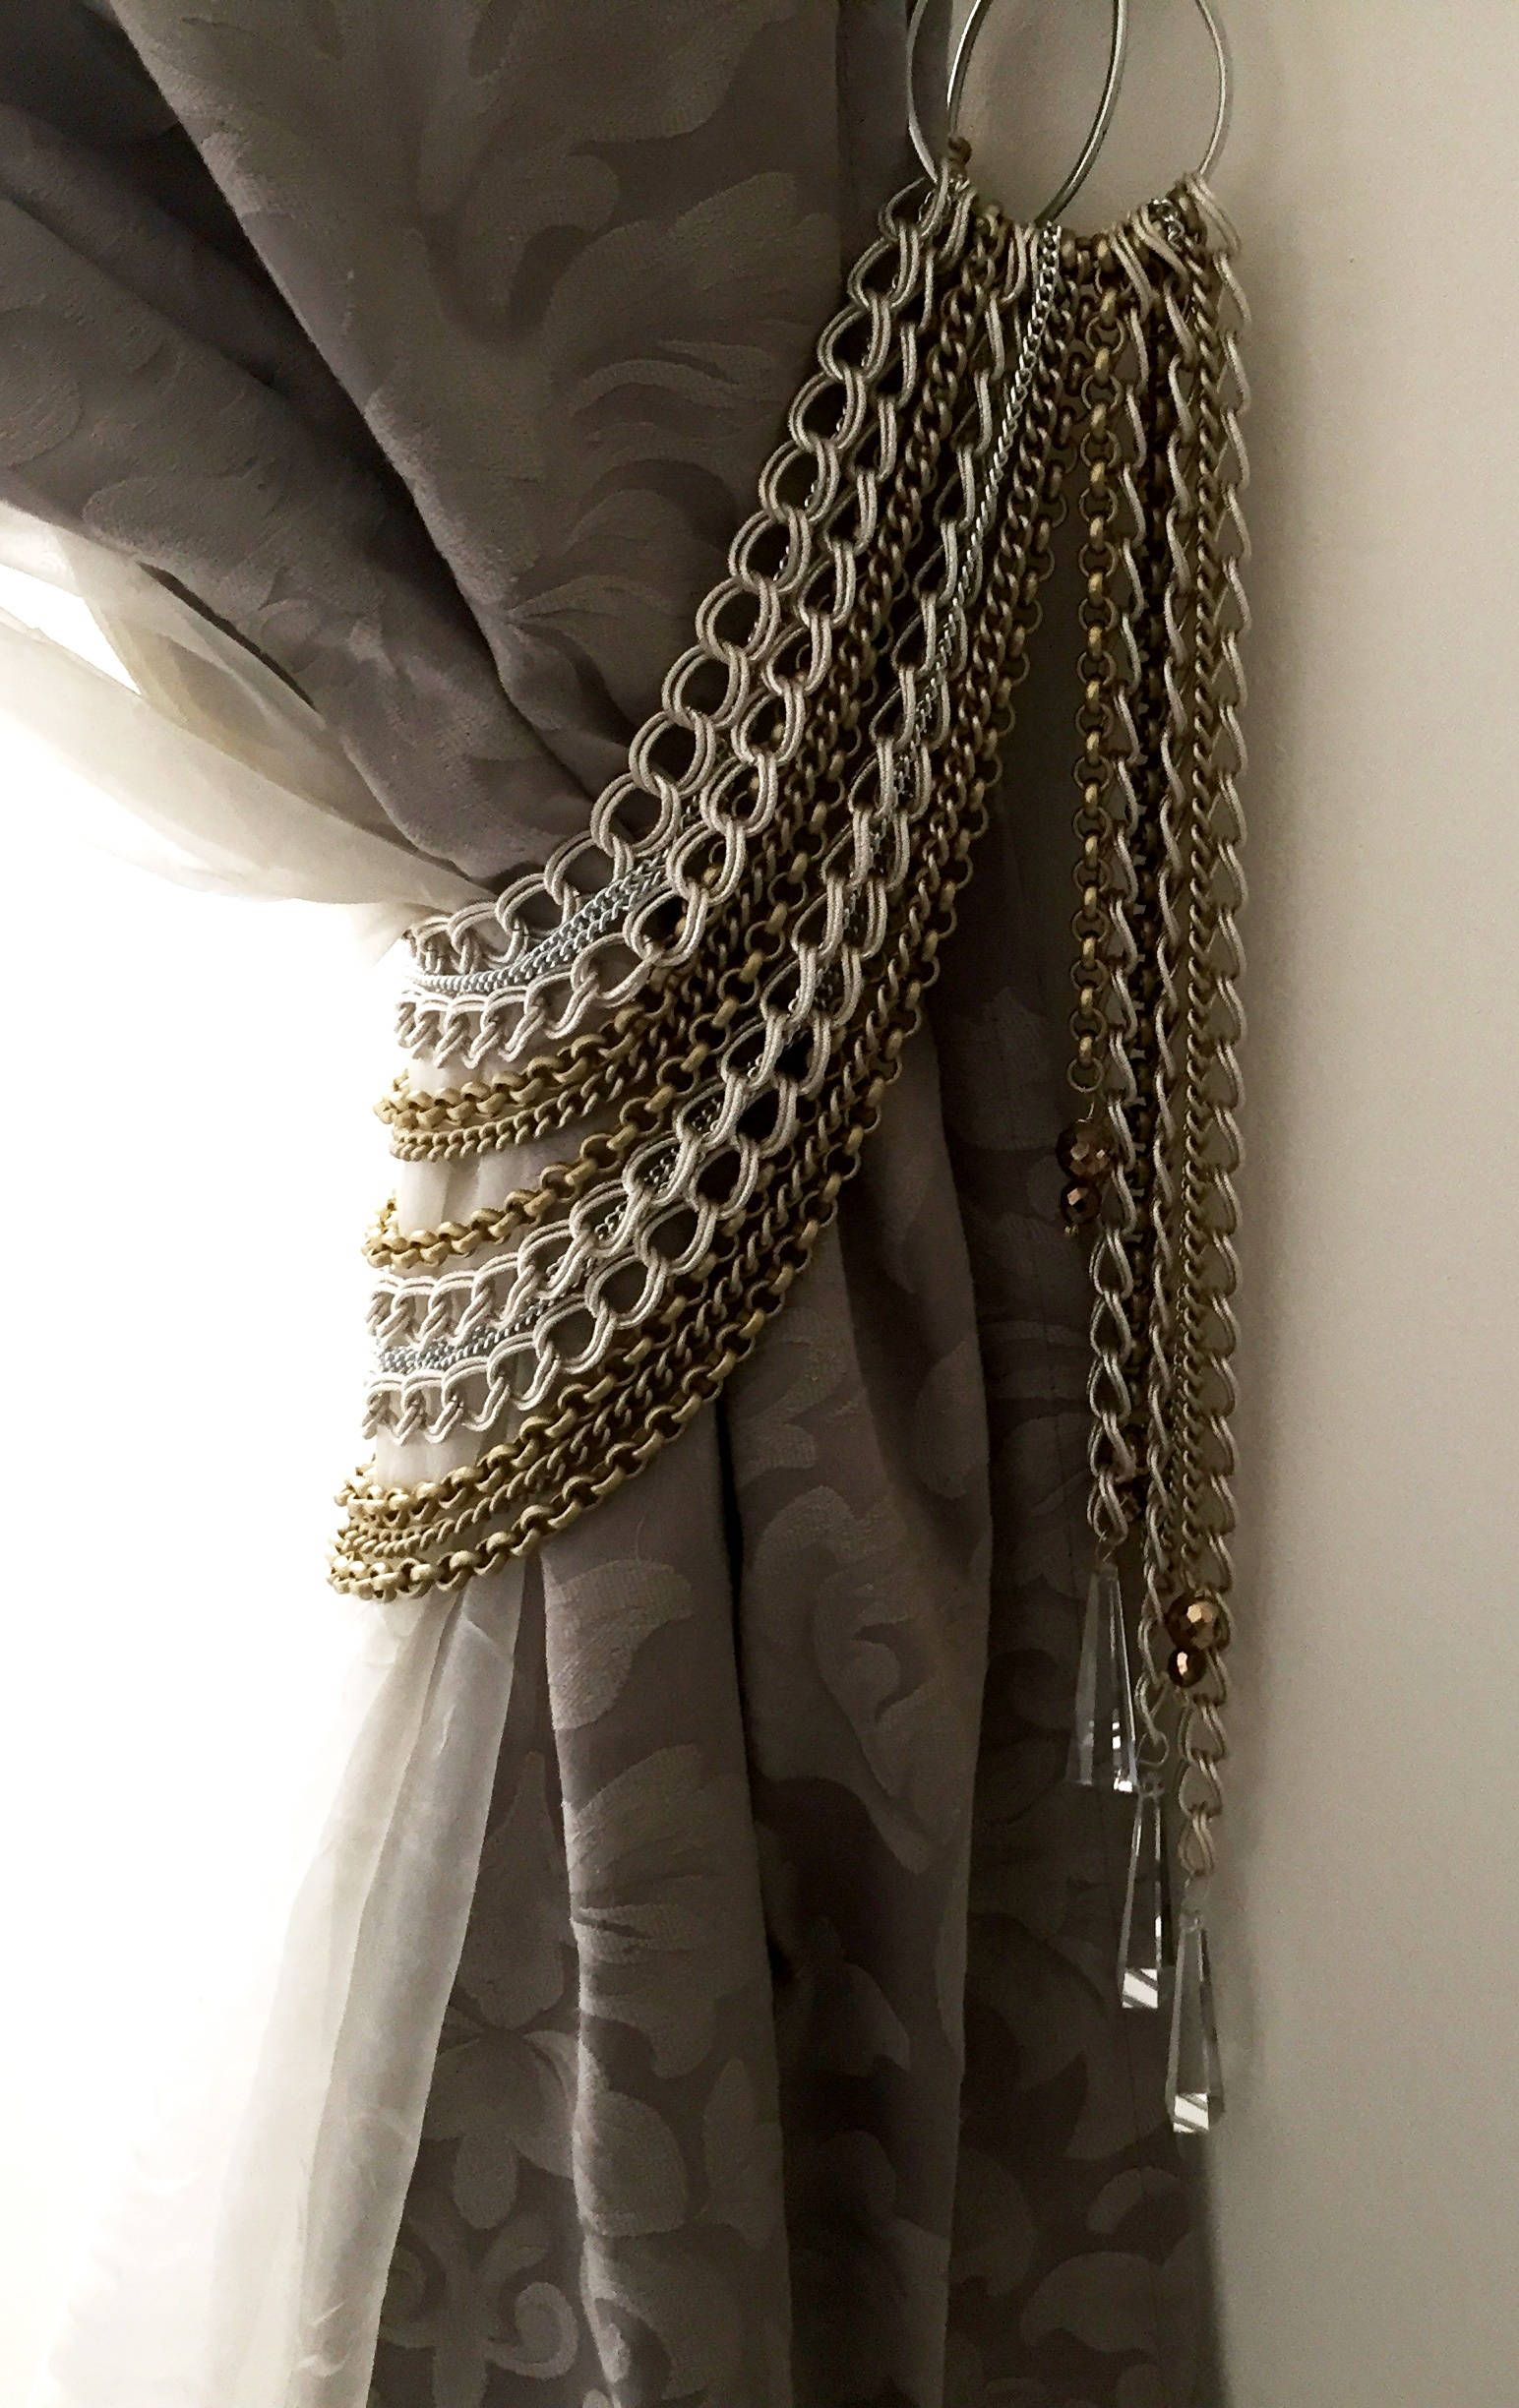 Opulent Curtain Holder Decorative Silver And Bronze Chains